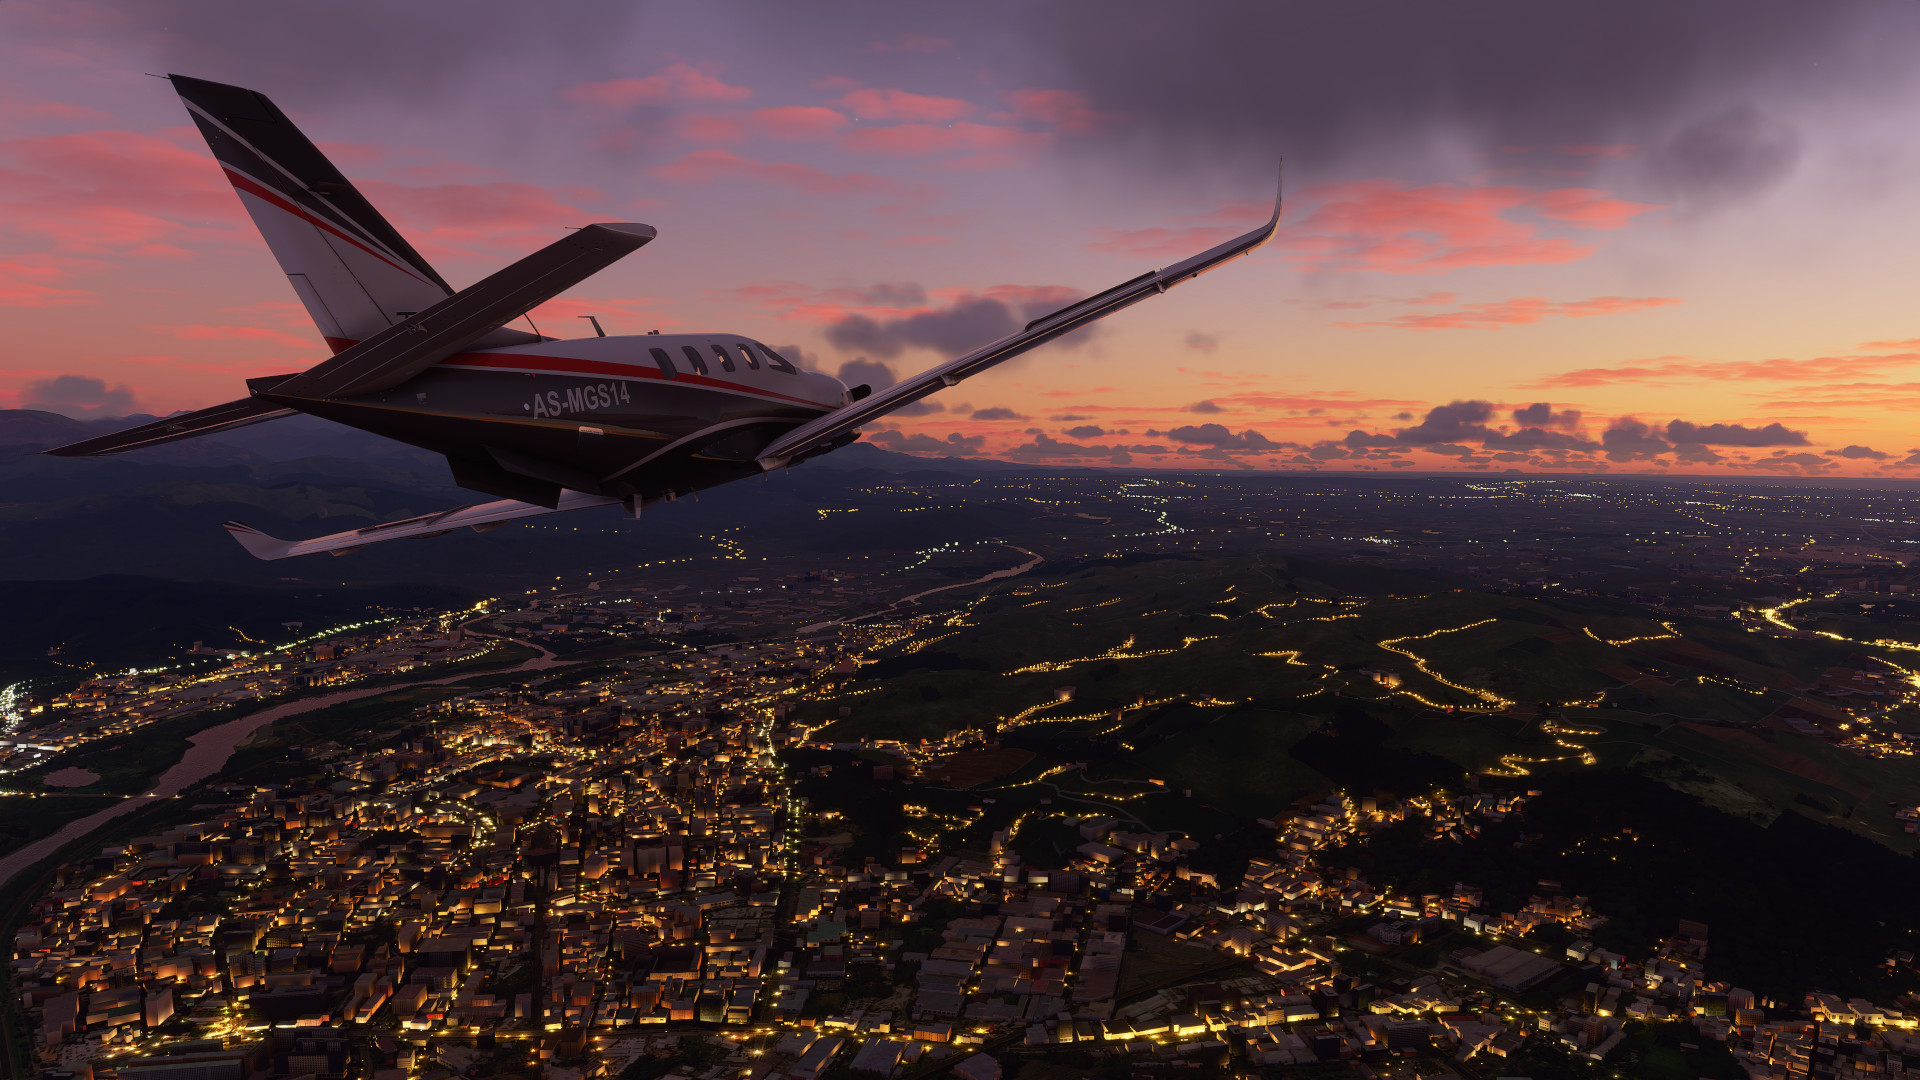 An aircraft flying over a city at sunset in Microsoft Flight Simulator